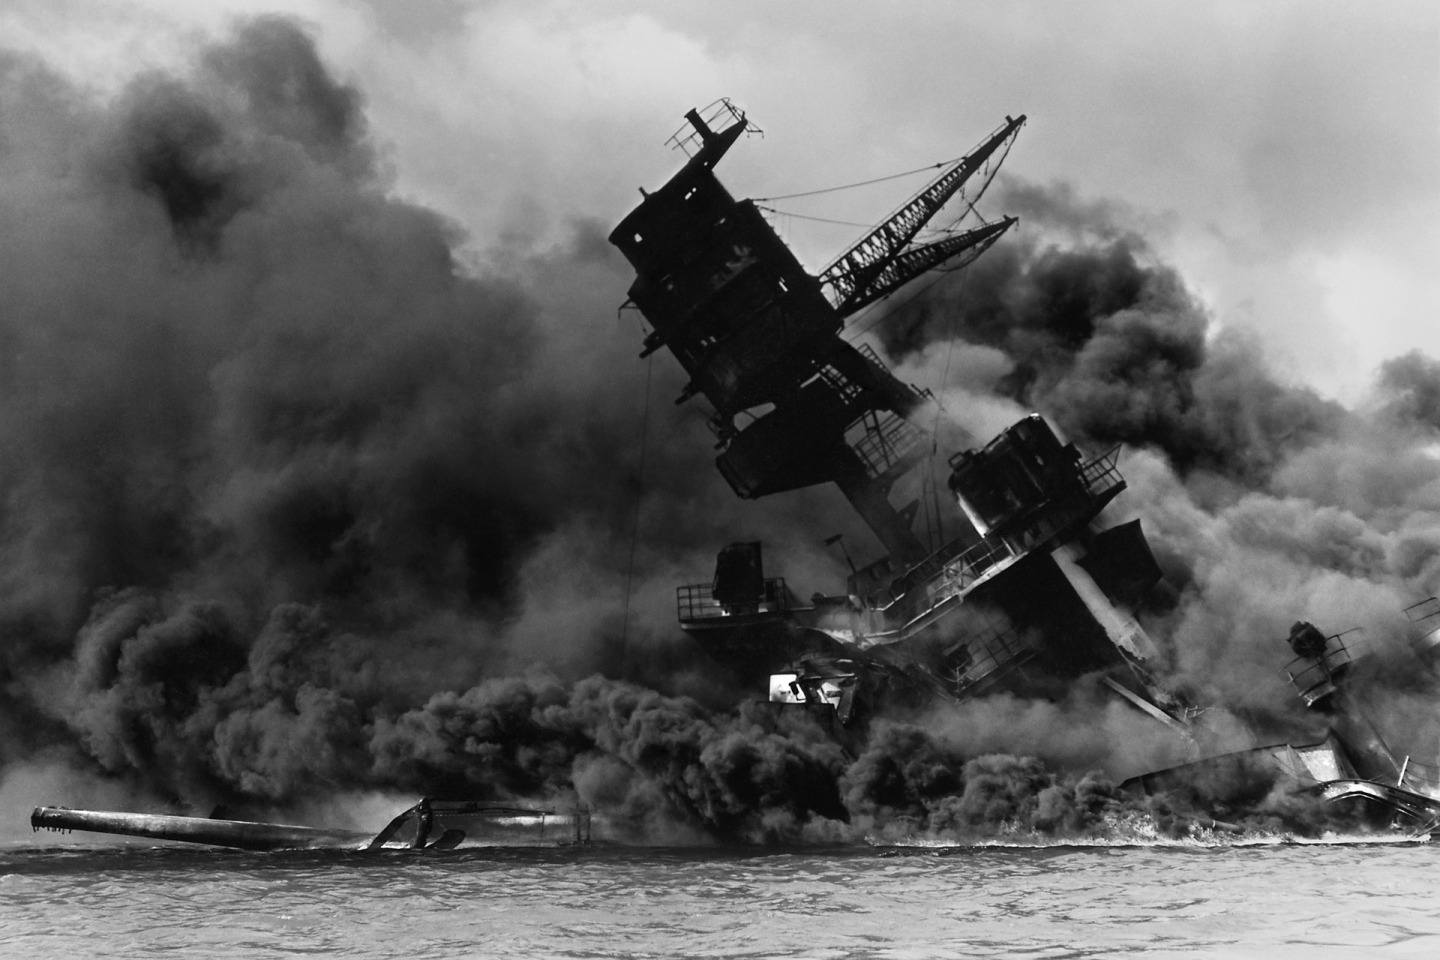 The USS Arizona (BB-39) burning after the Japanese attack on Pearl Harbor, 7 December 1941. USS Arizona sunk at en:Pearl Harbor. The ship is resting on the harbor bottom. The supporting structure of the forward tripod mast has collapsed after the forward magazine exploded.